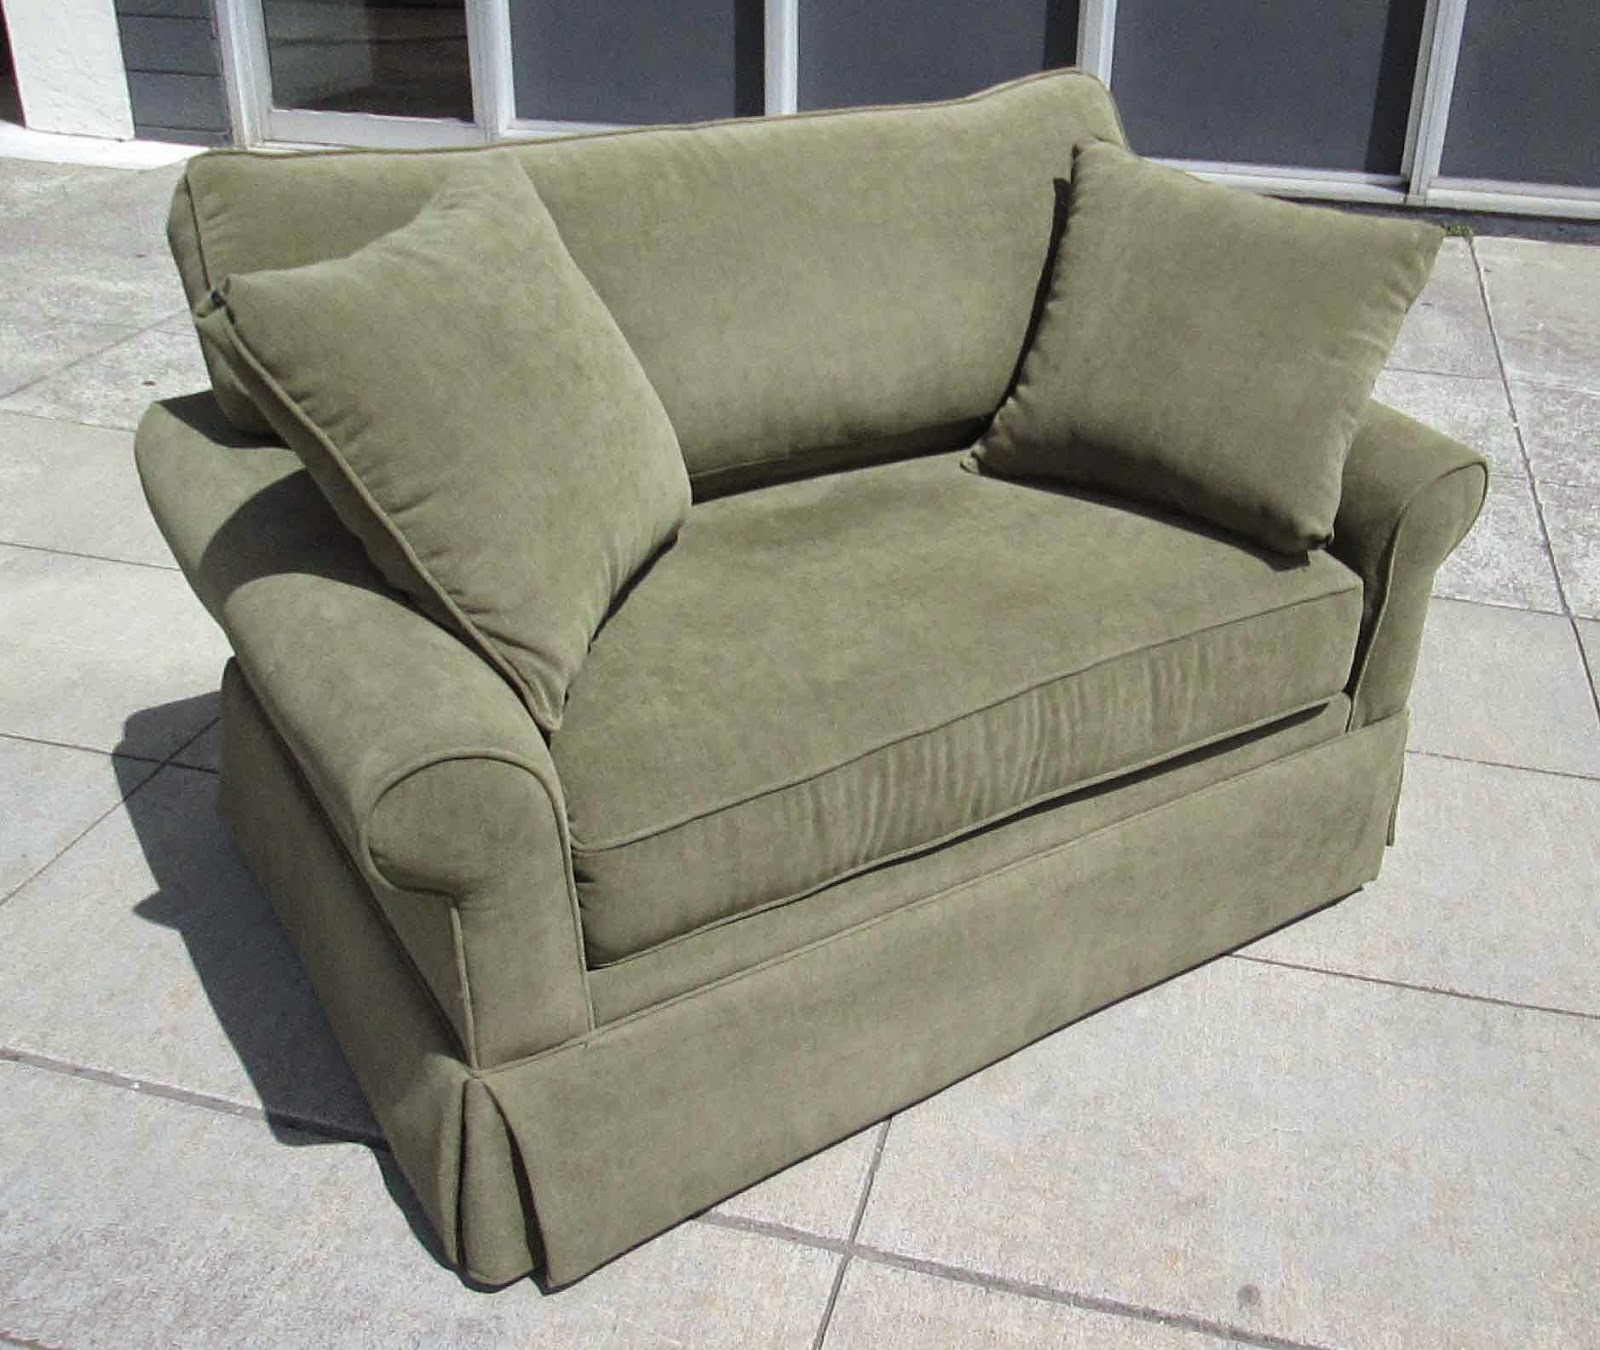 Chair And A Half Sleeper Emerald Green Velvet Uhuru Furniture Collectibles Sold With